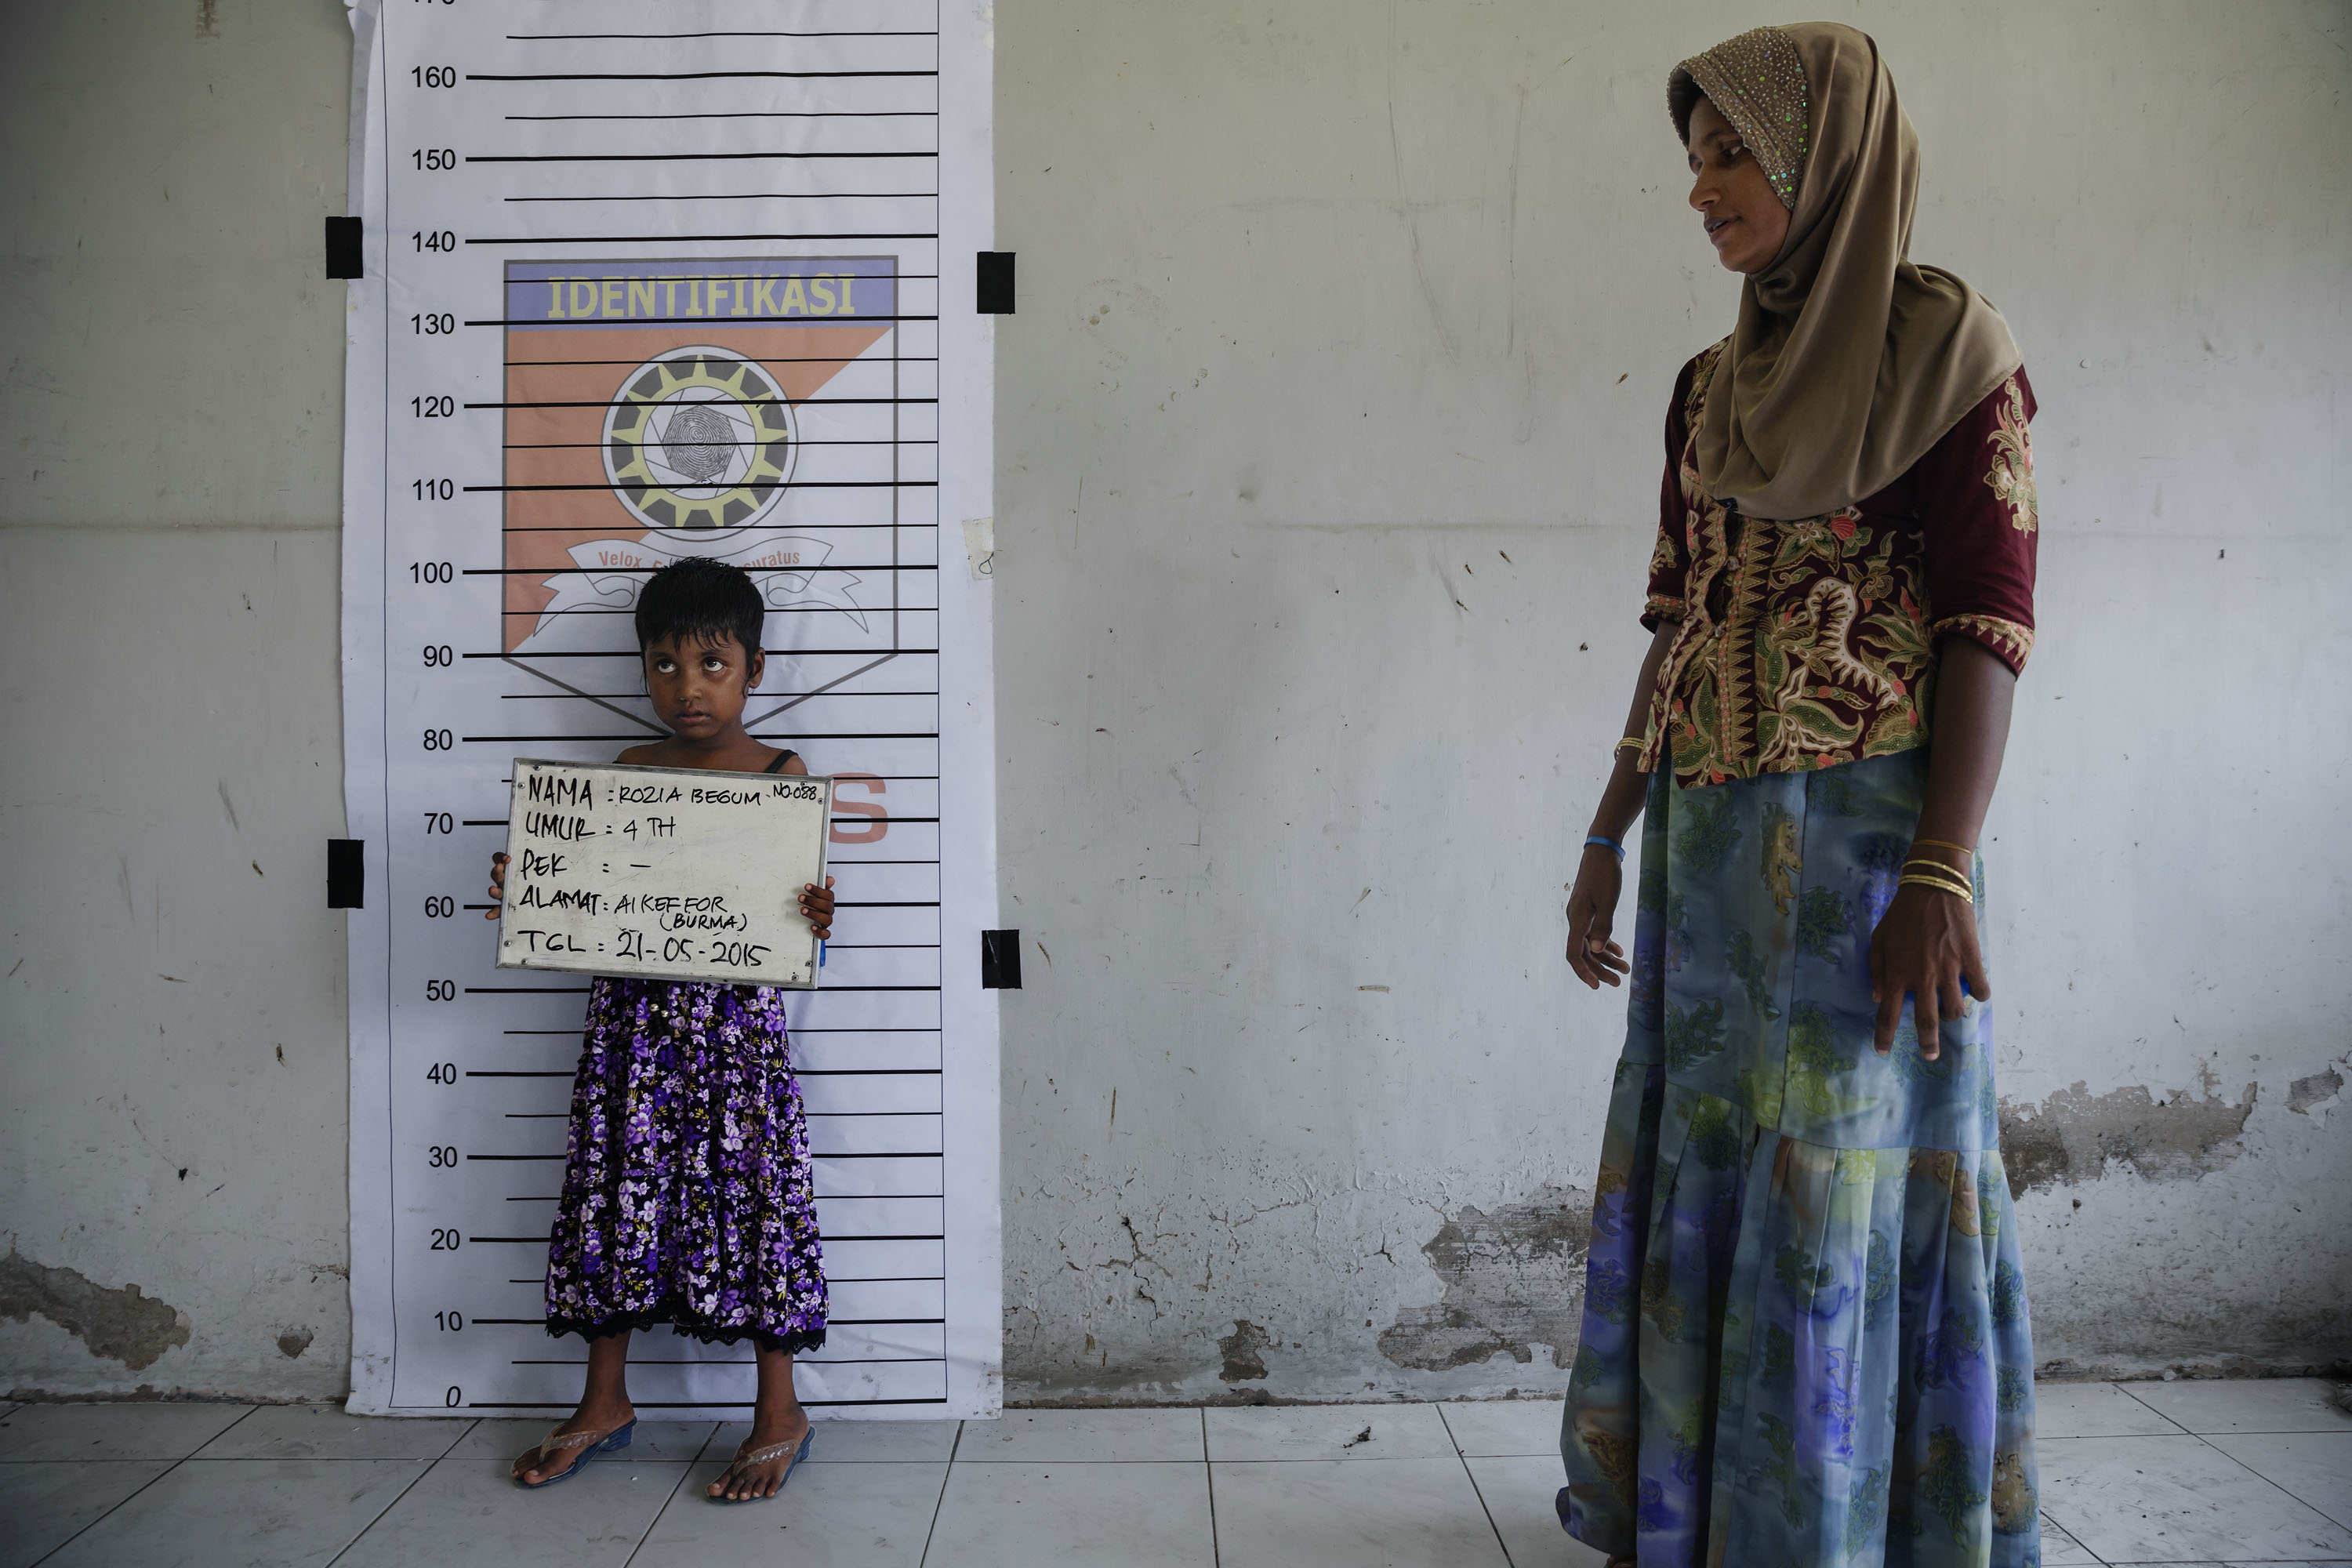 A Rohingya child is registered at a temporary shelter in Indonesia in May.